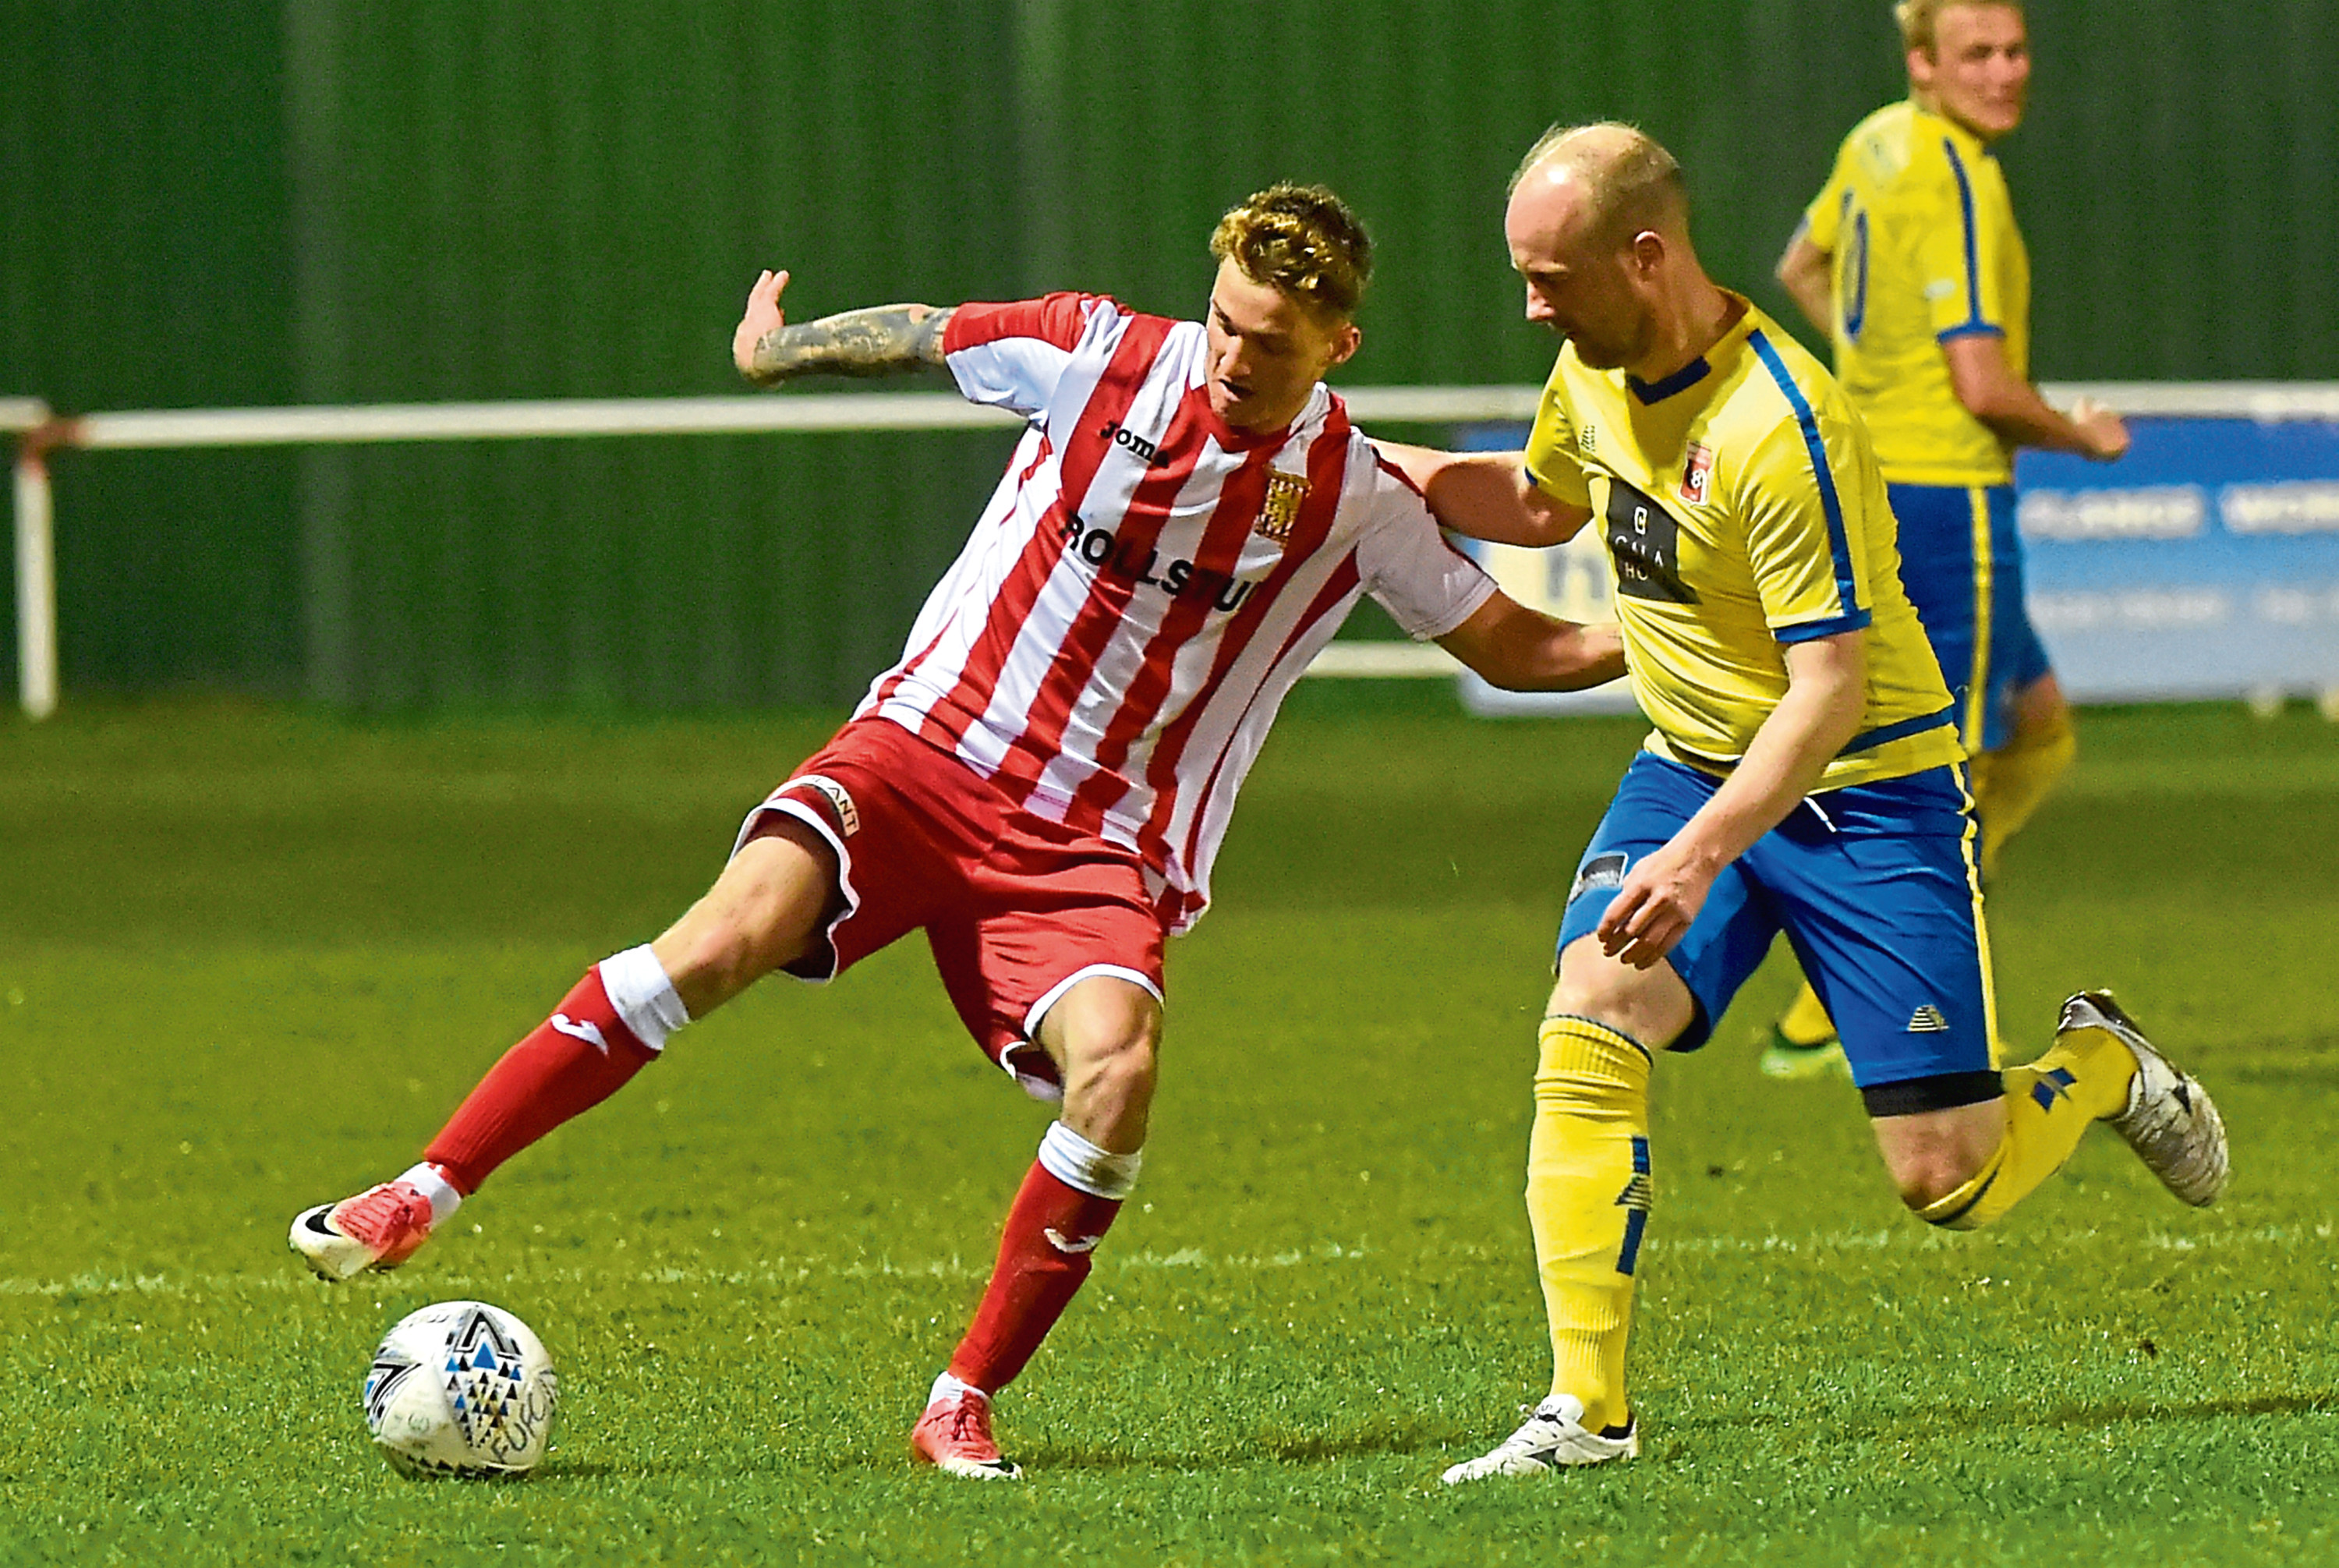 Formartine's Aaron Norris, left Picture by KENNY ELRICK